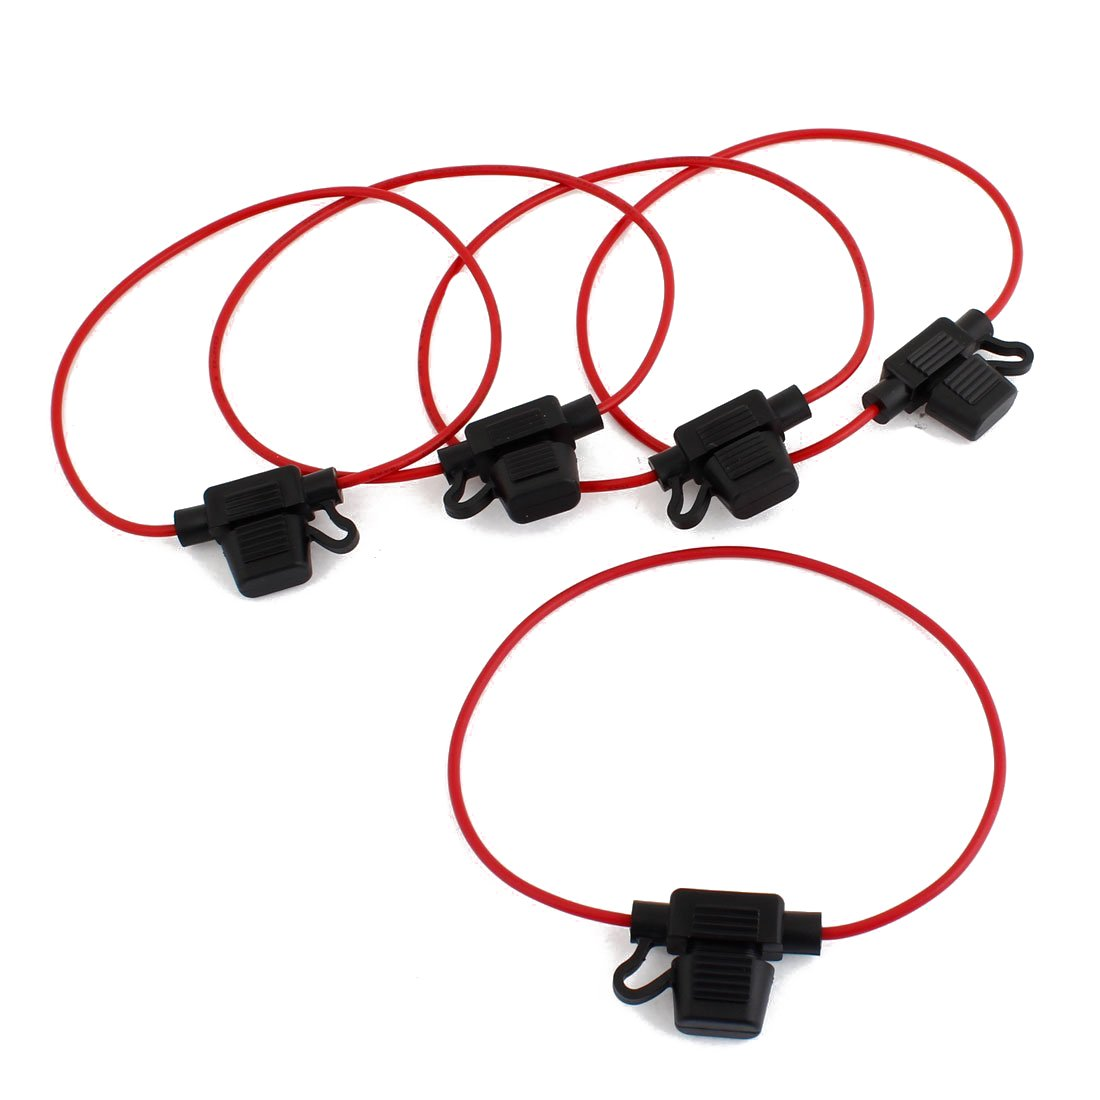 Car Blade Fuse Holder - SODIAL(R) 5 Pcs 32V 30A Mini ATC Blade Fuse Holder Container 064409